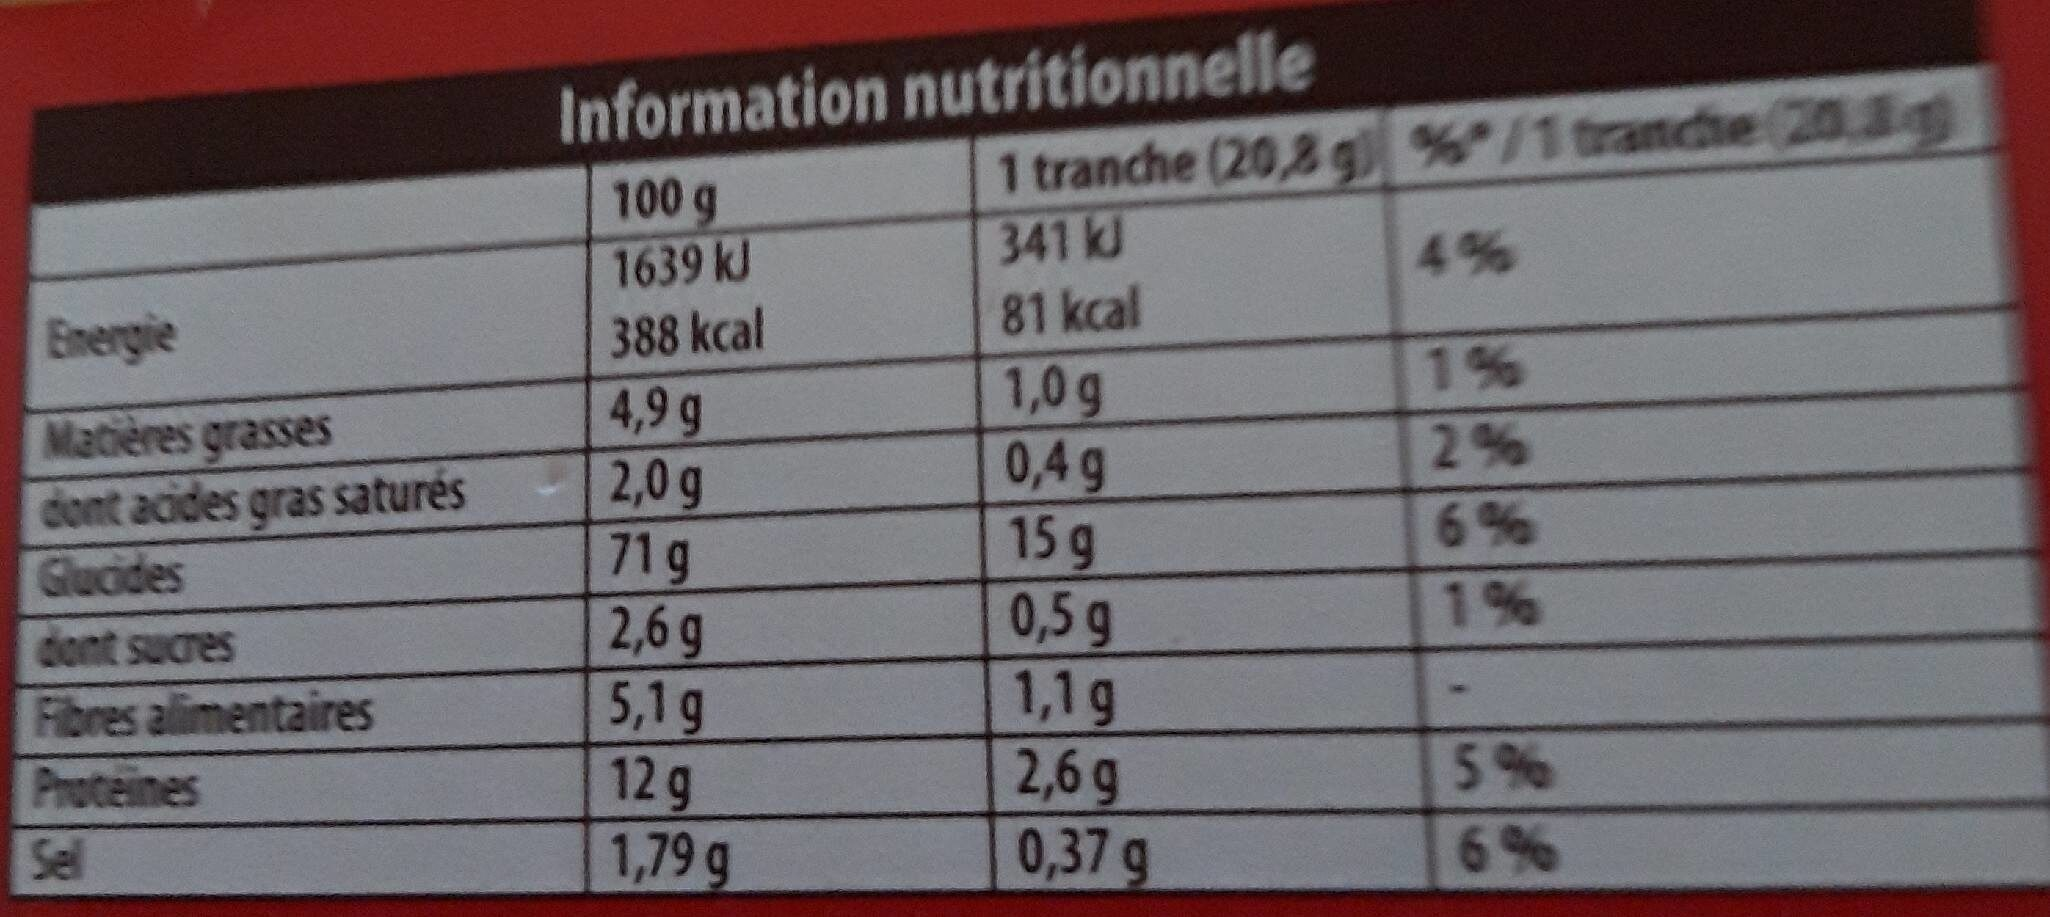 Le Pain Grillé Pelletier blé complet - Nutrition facts - fr